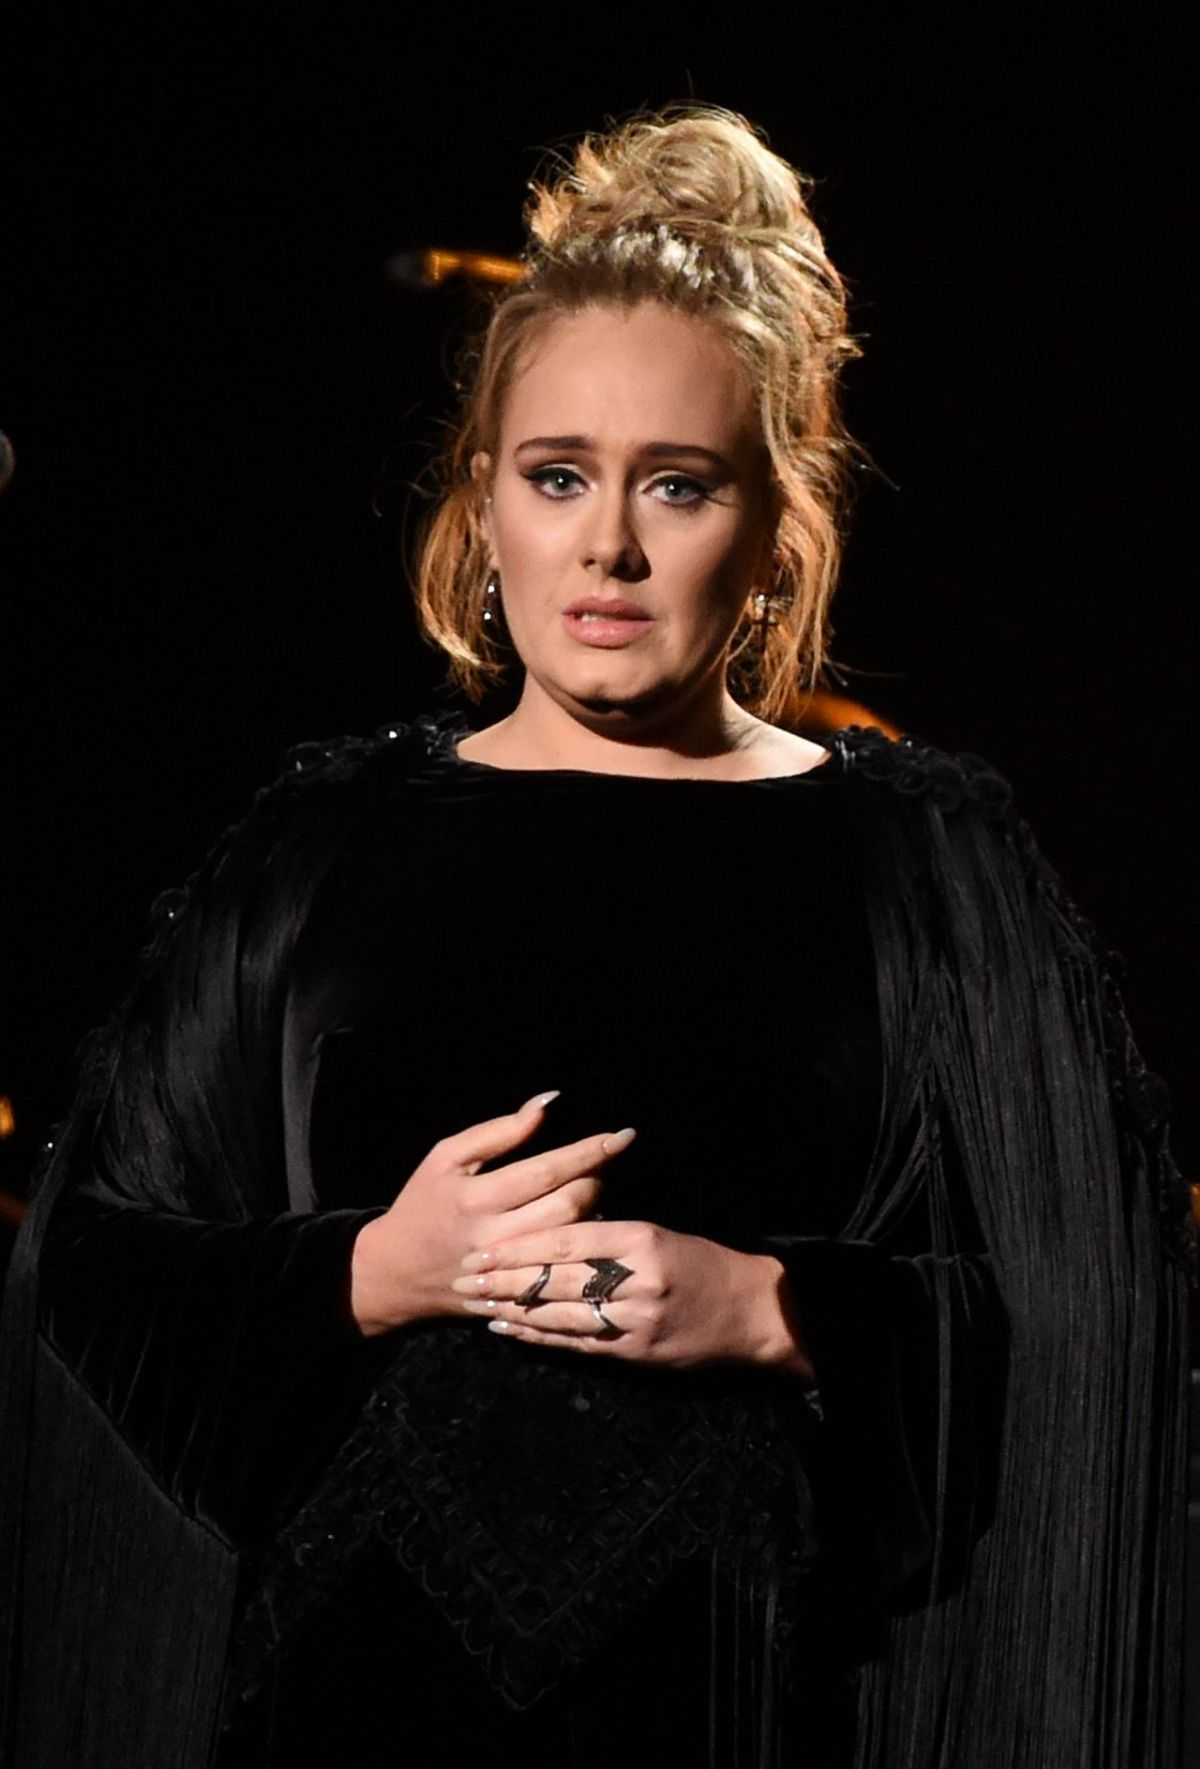 ADELE Performs at 2017 Grammy Awards in Los Angeles 02/12/2017